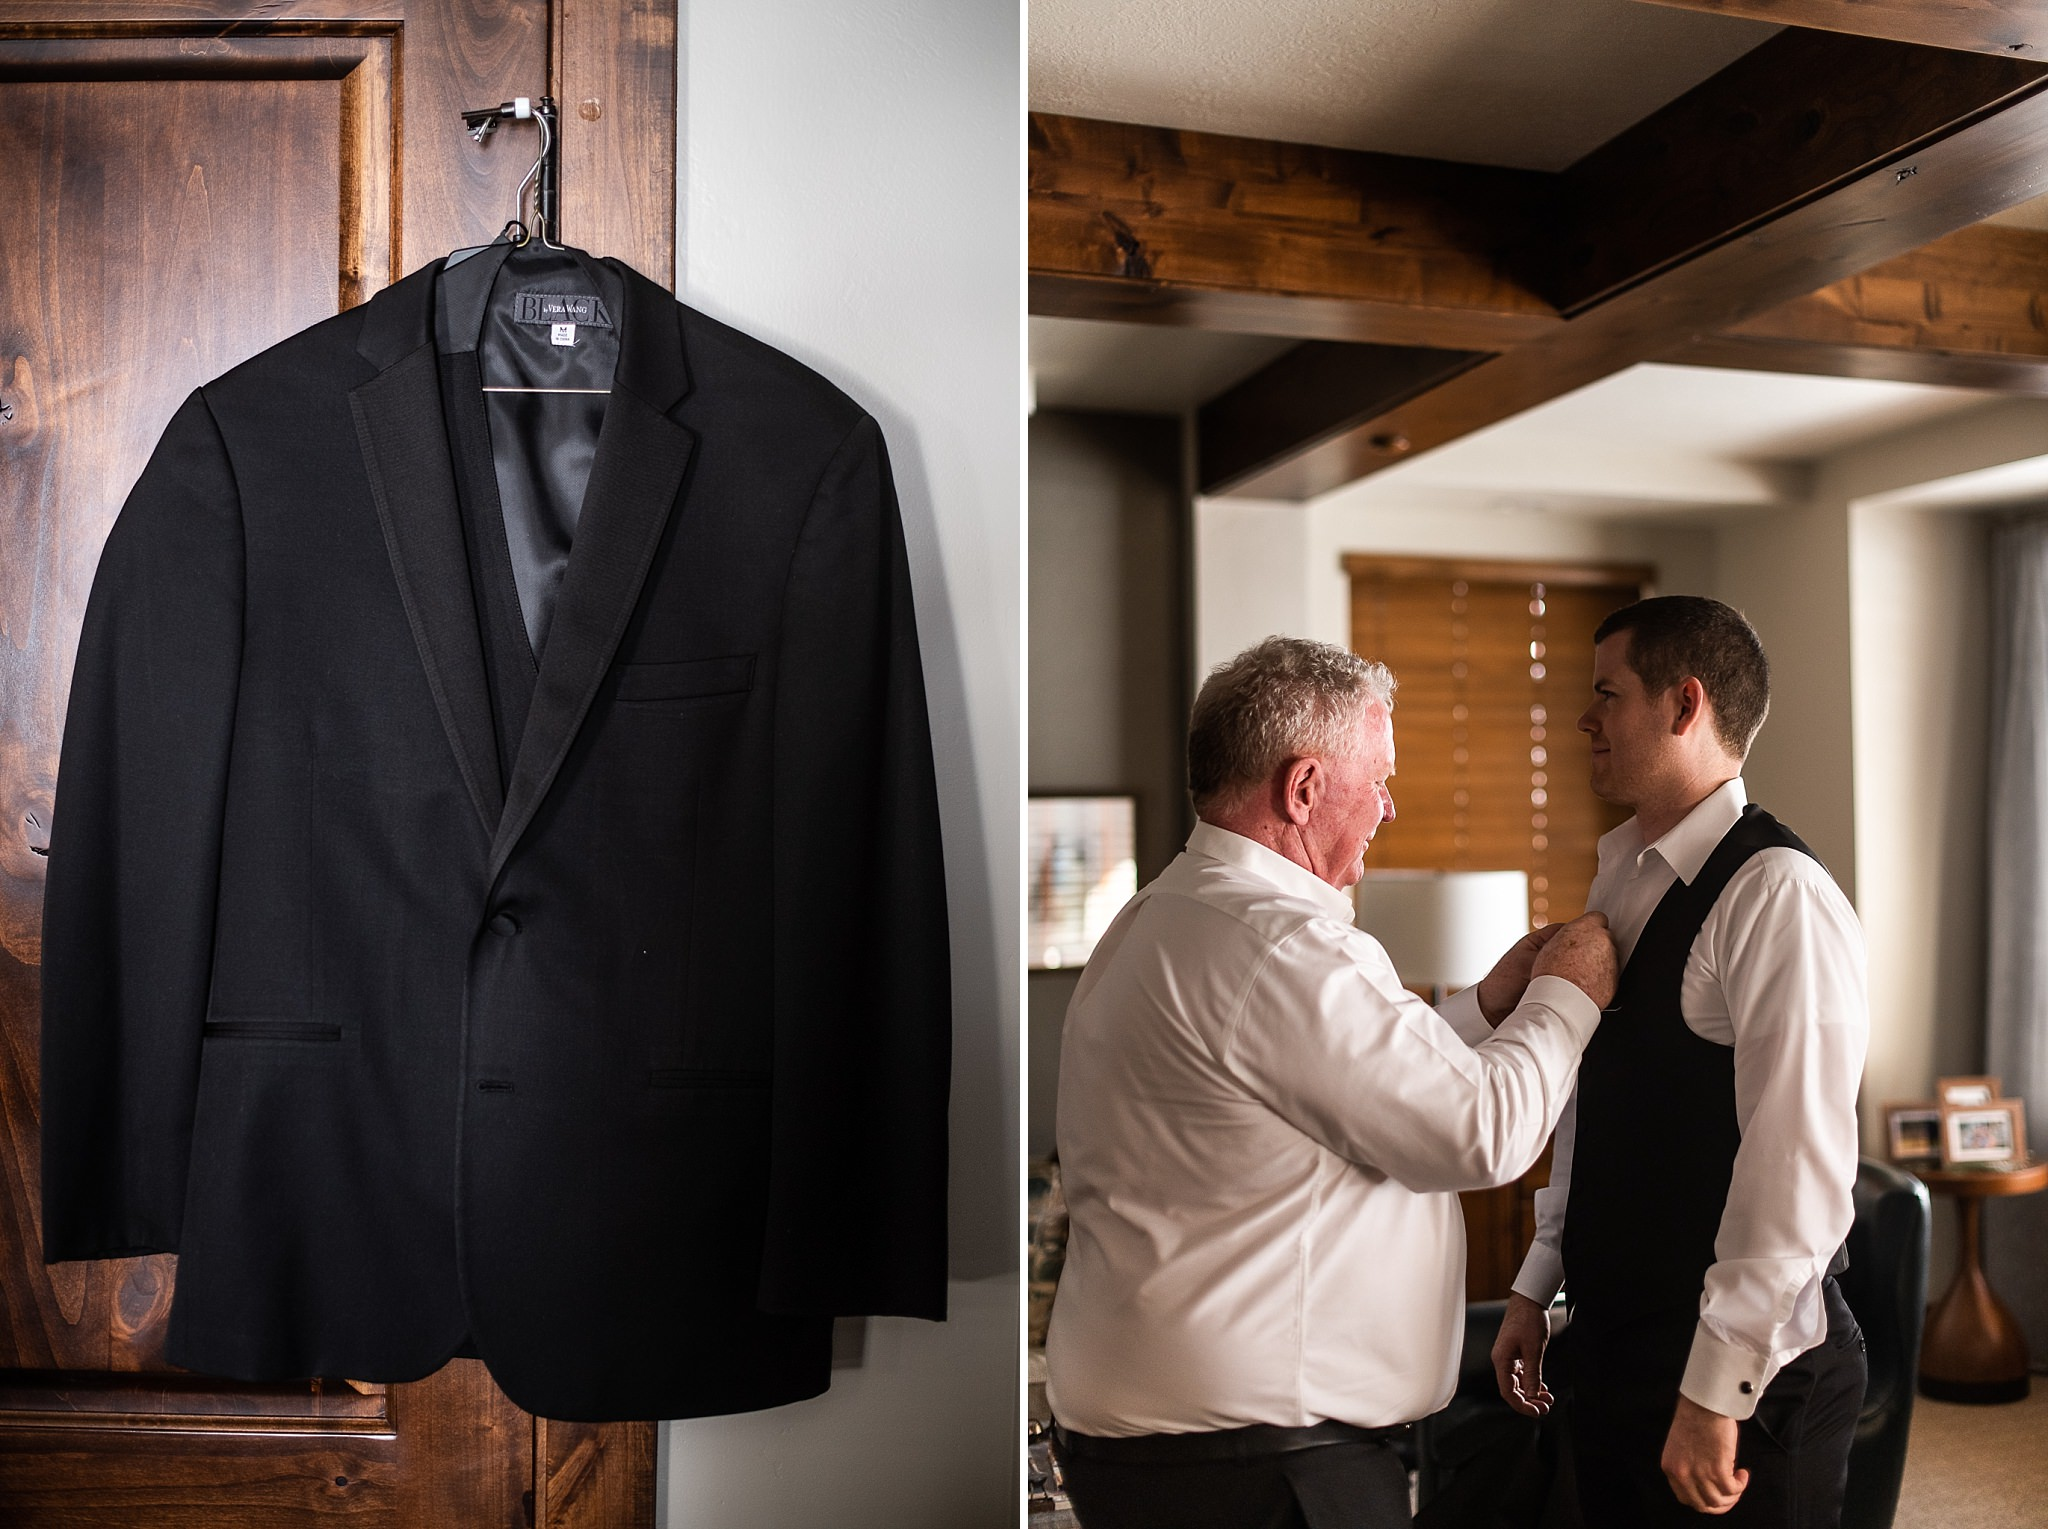 Groom Getting Ready for Wedding with Dad